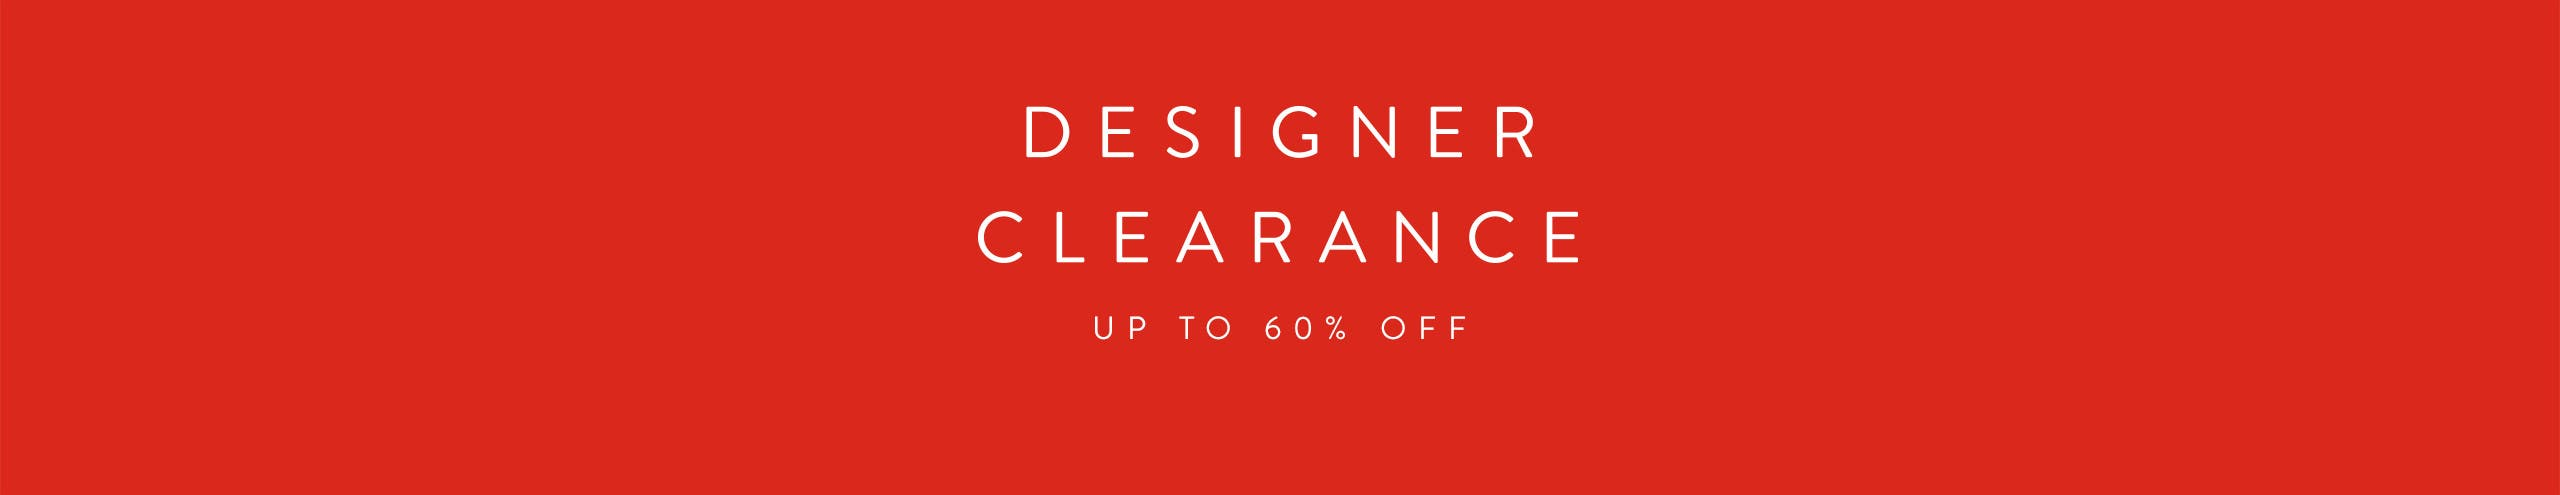 Women's Designer Clearance: up to 60% off.